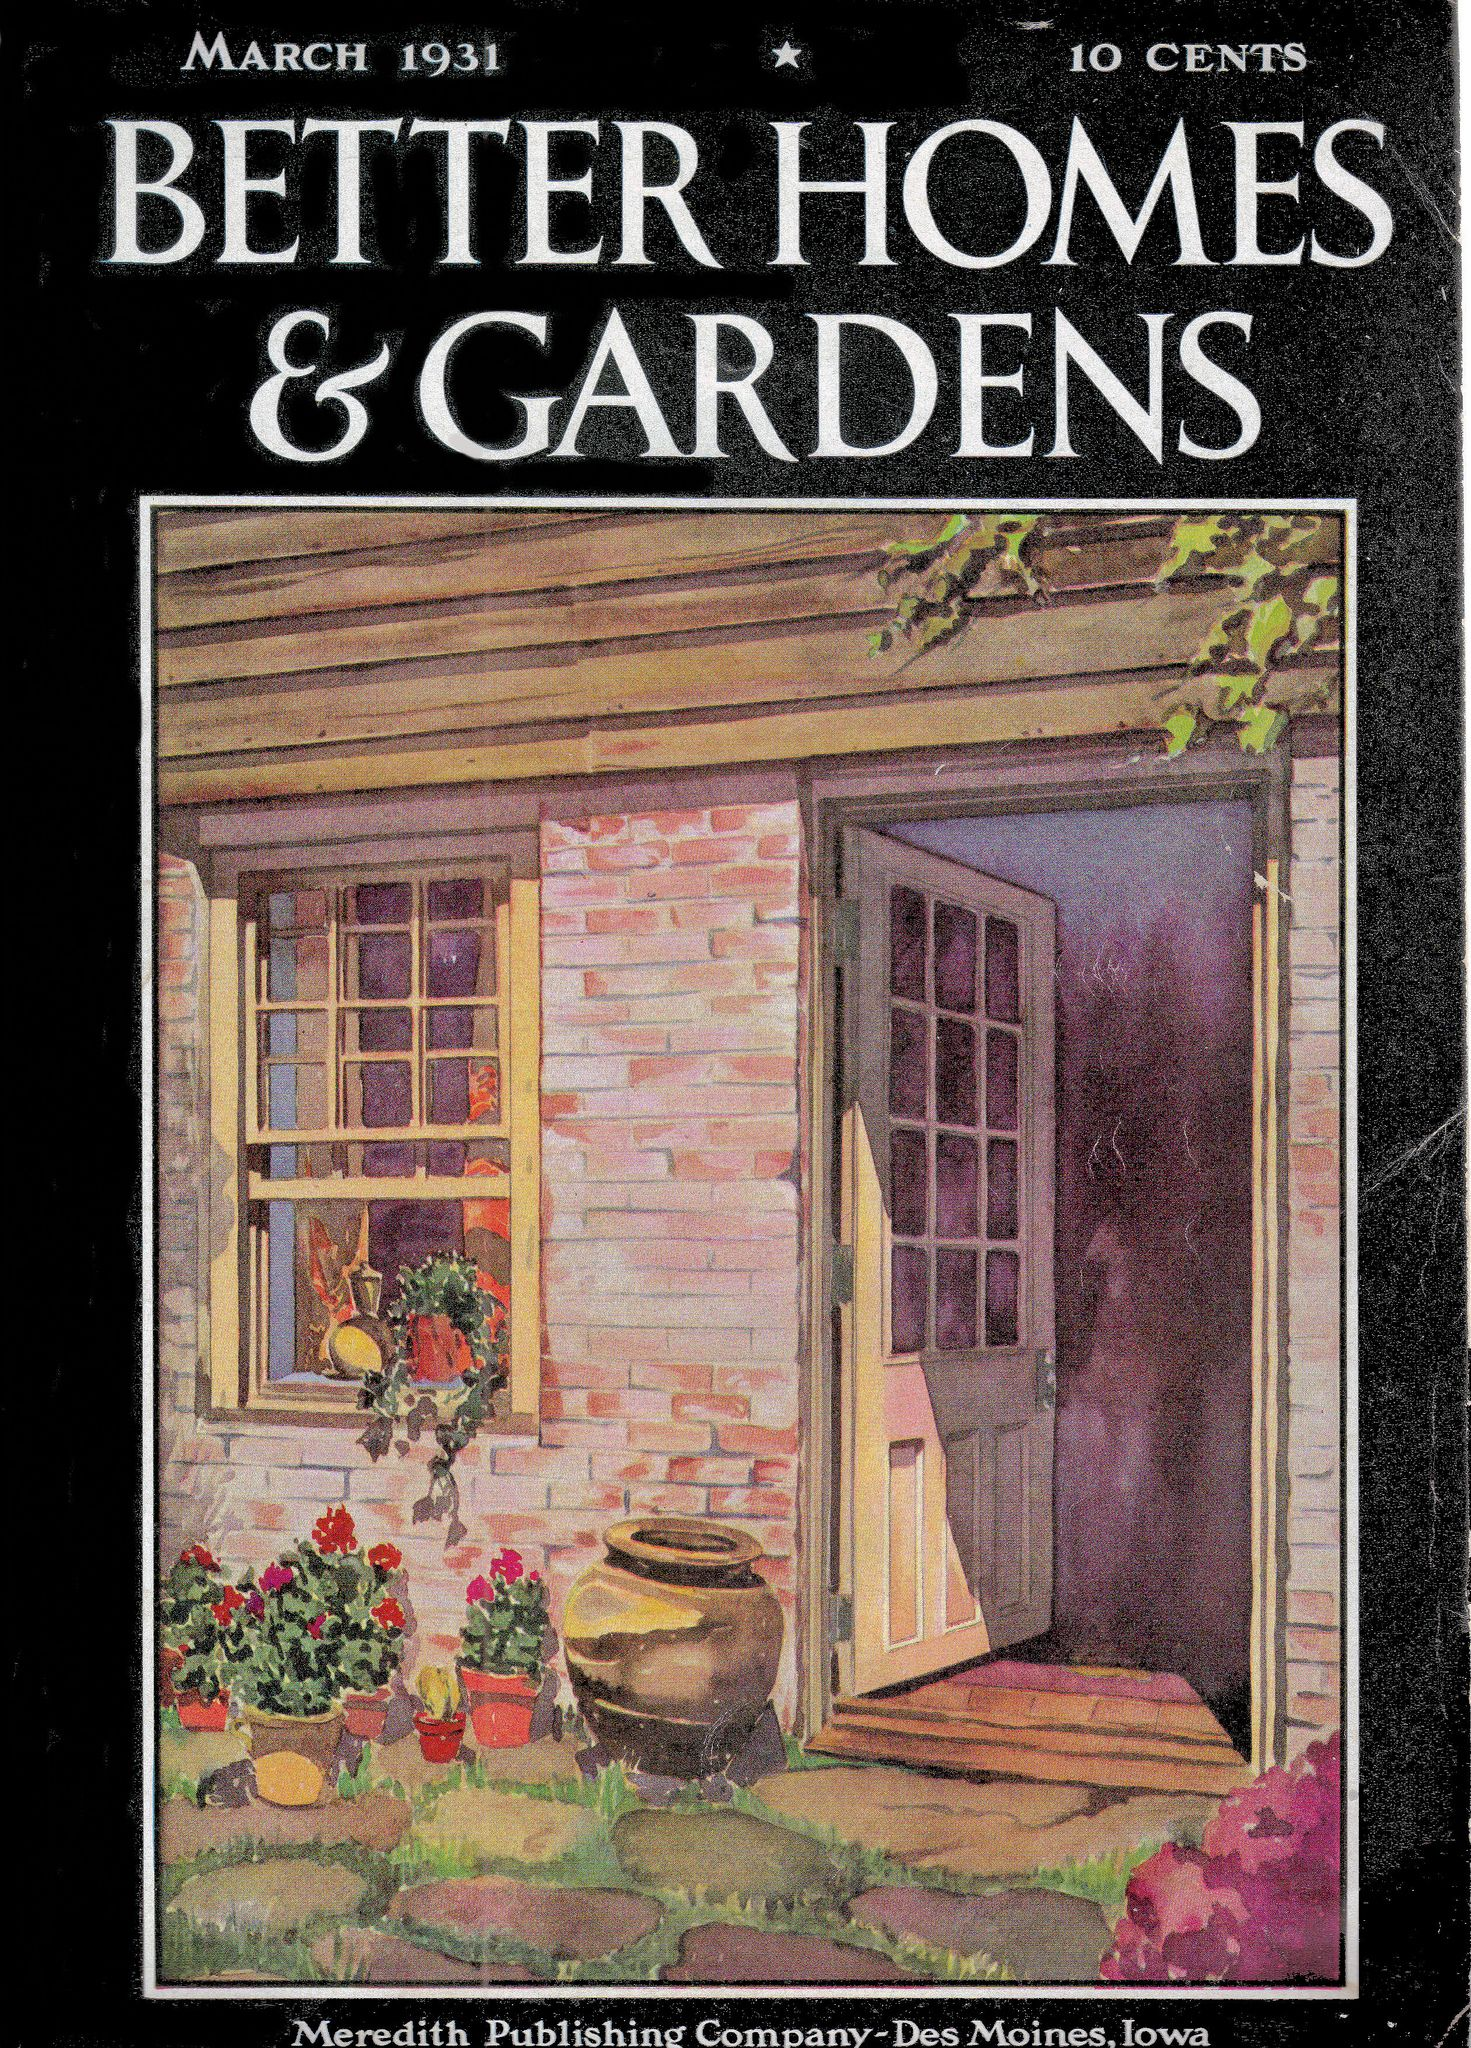 c19891197e42b9cb96e028eb81f08330 - Old Better Homes And Gardens Magazines